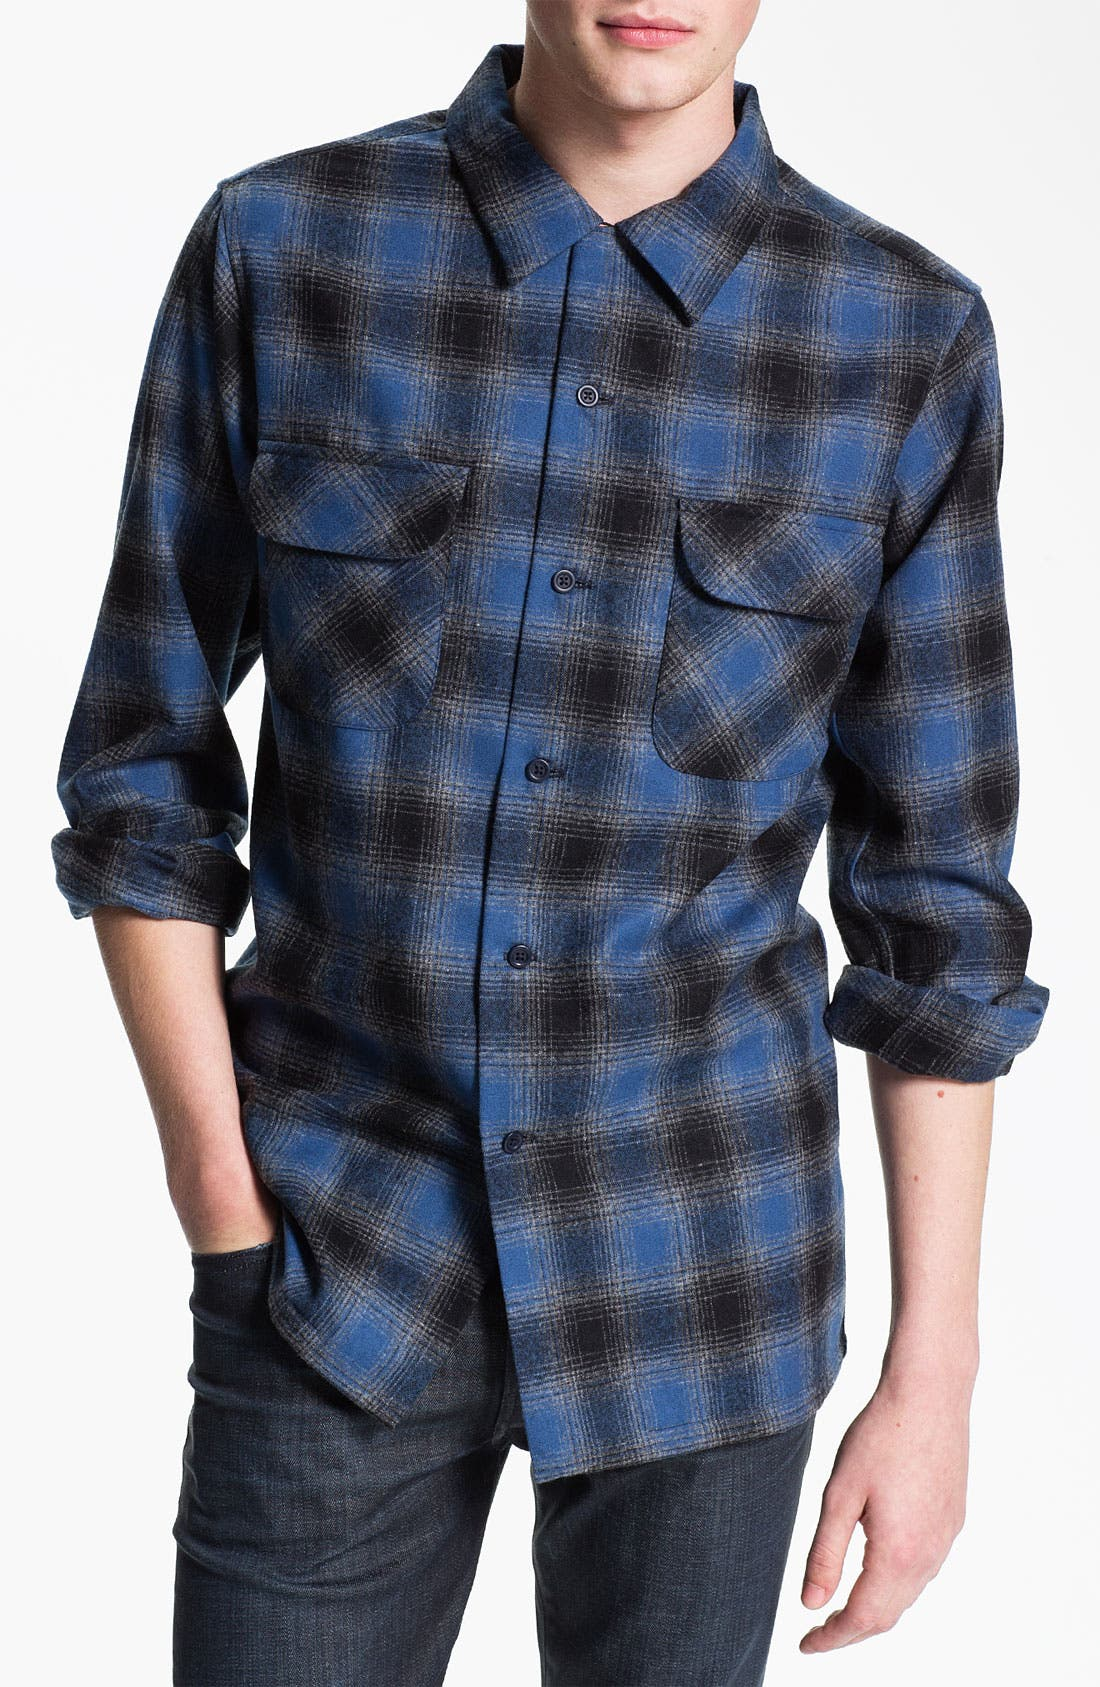 Main Image - Pendleton 'Board' Plaid Flannel Shirt